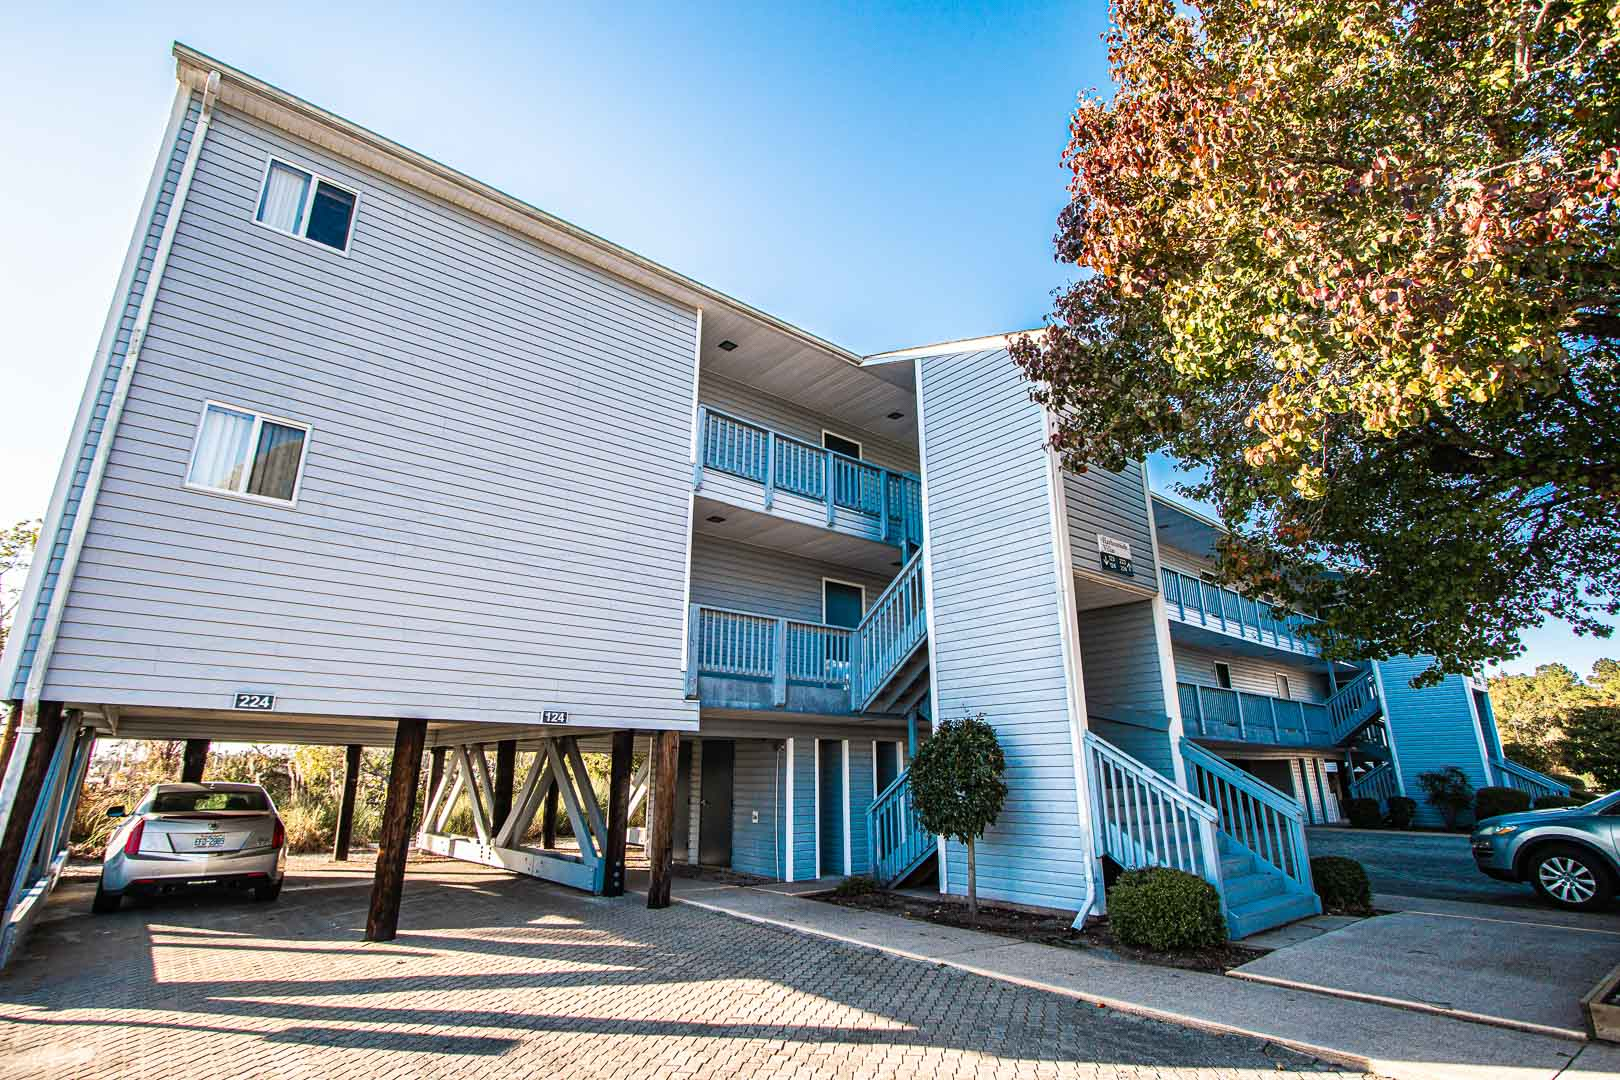 An outside view of the units at VRI's Harbourside II in New Bern, North Carolina.